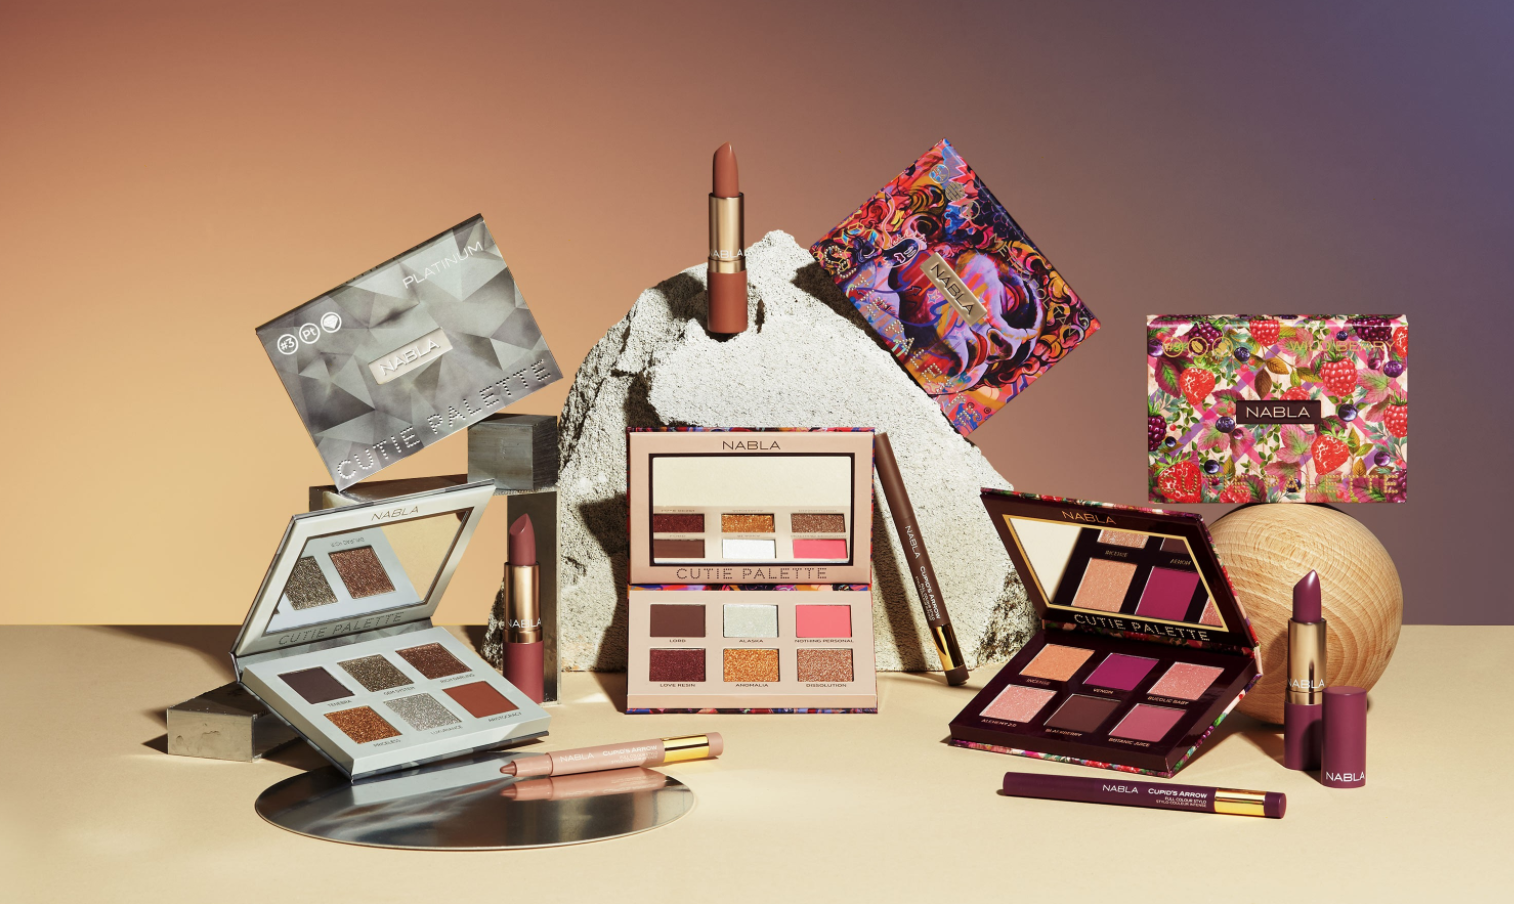 An advertisement for Nabla Cosmetics' Cutie Collection.